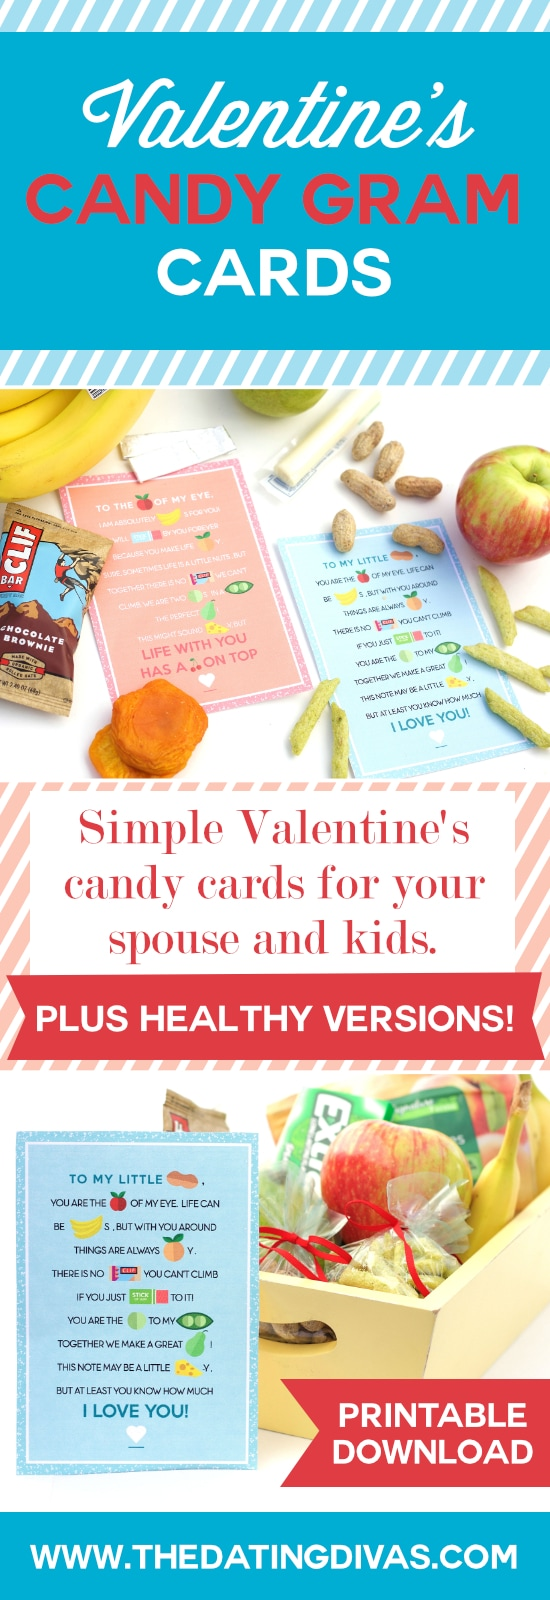 Simple Valentine's Candy and Healthy Cards